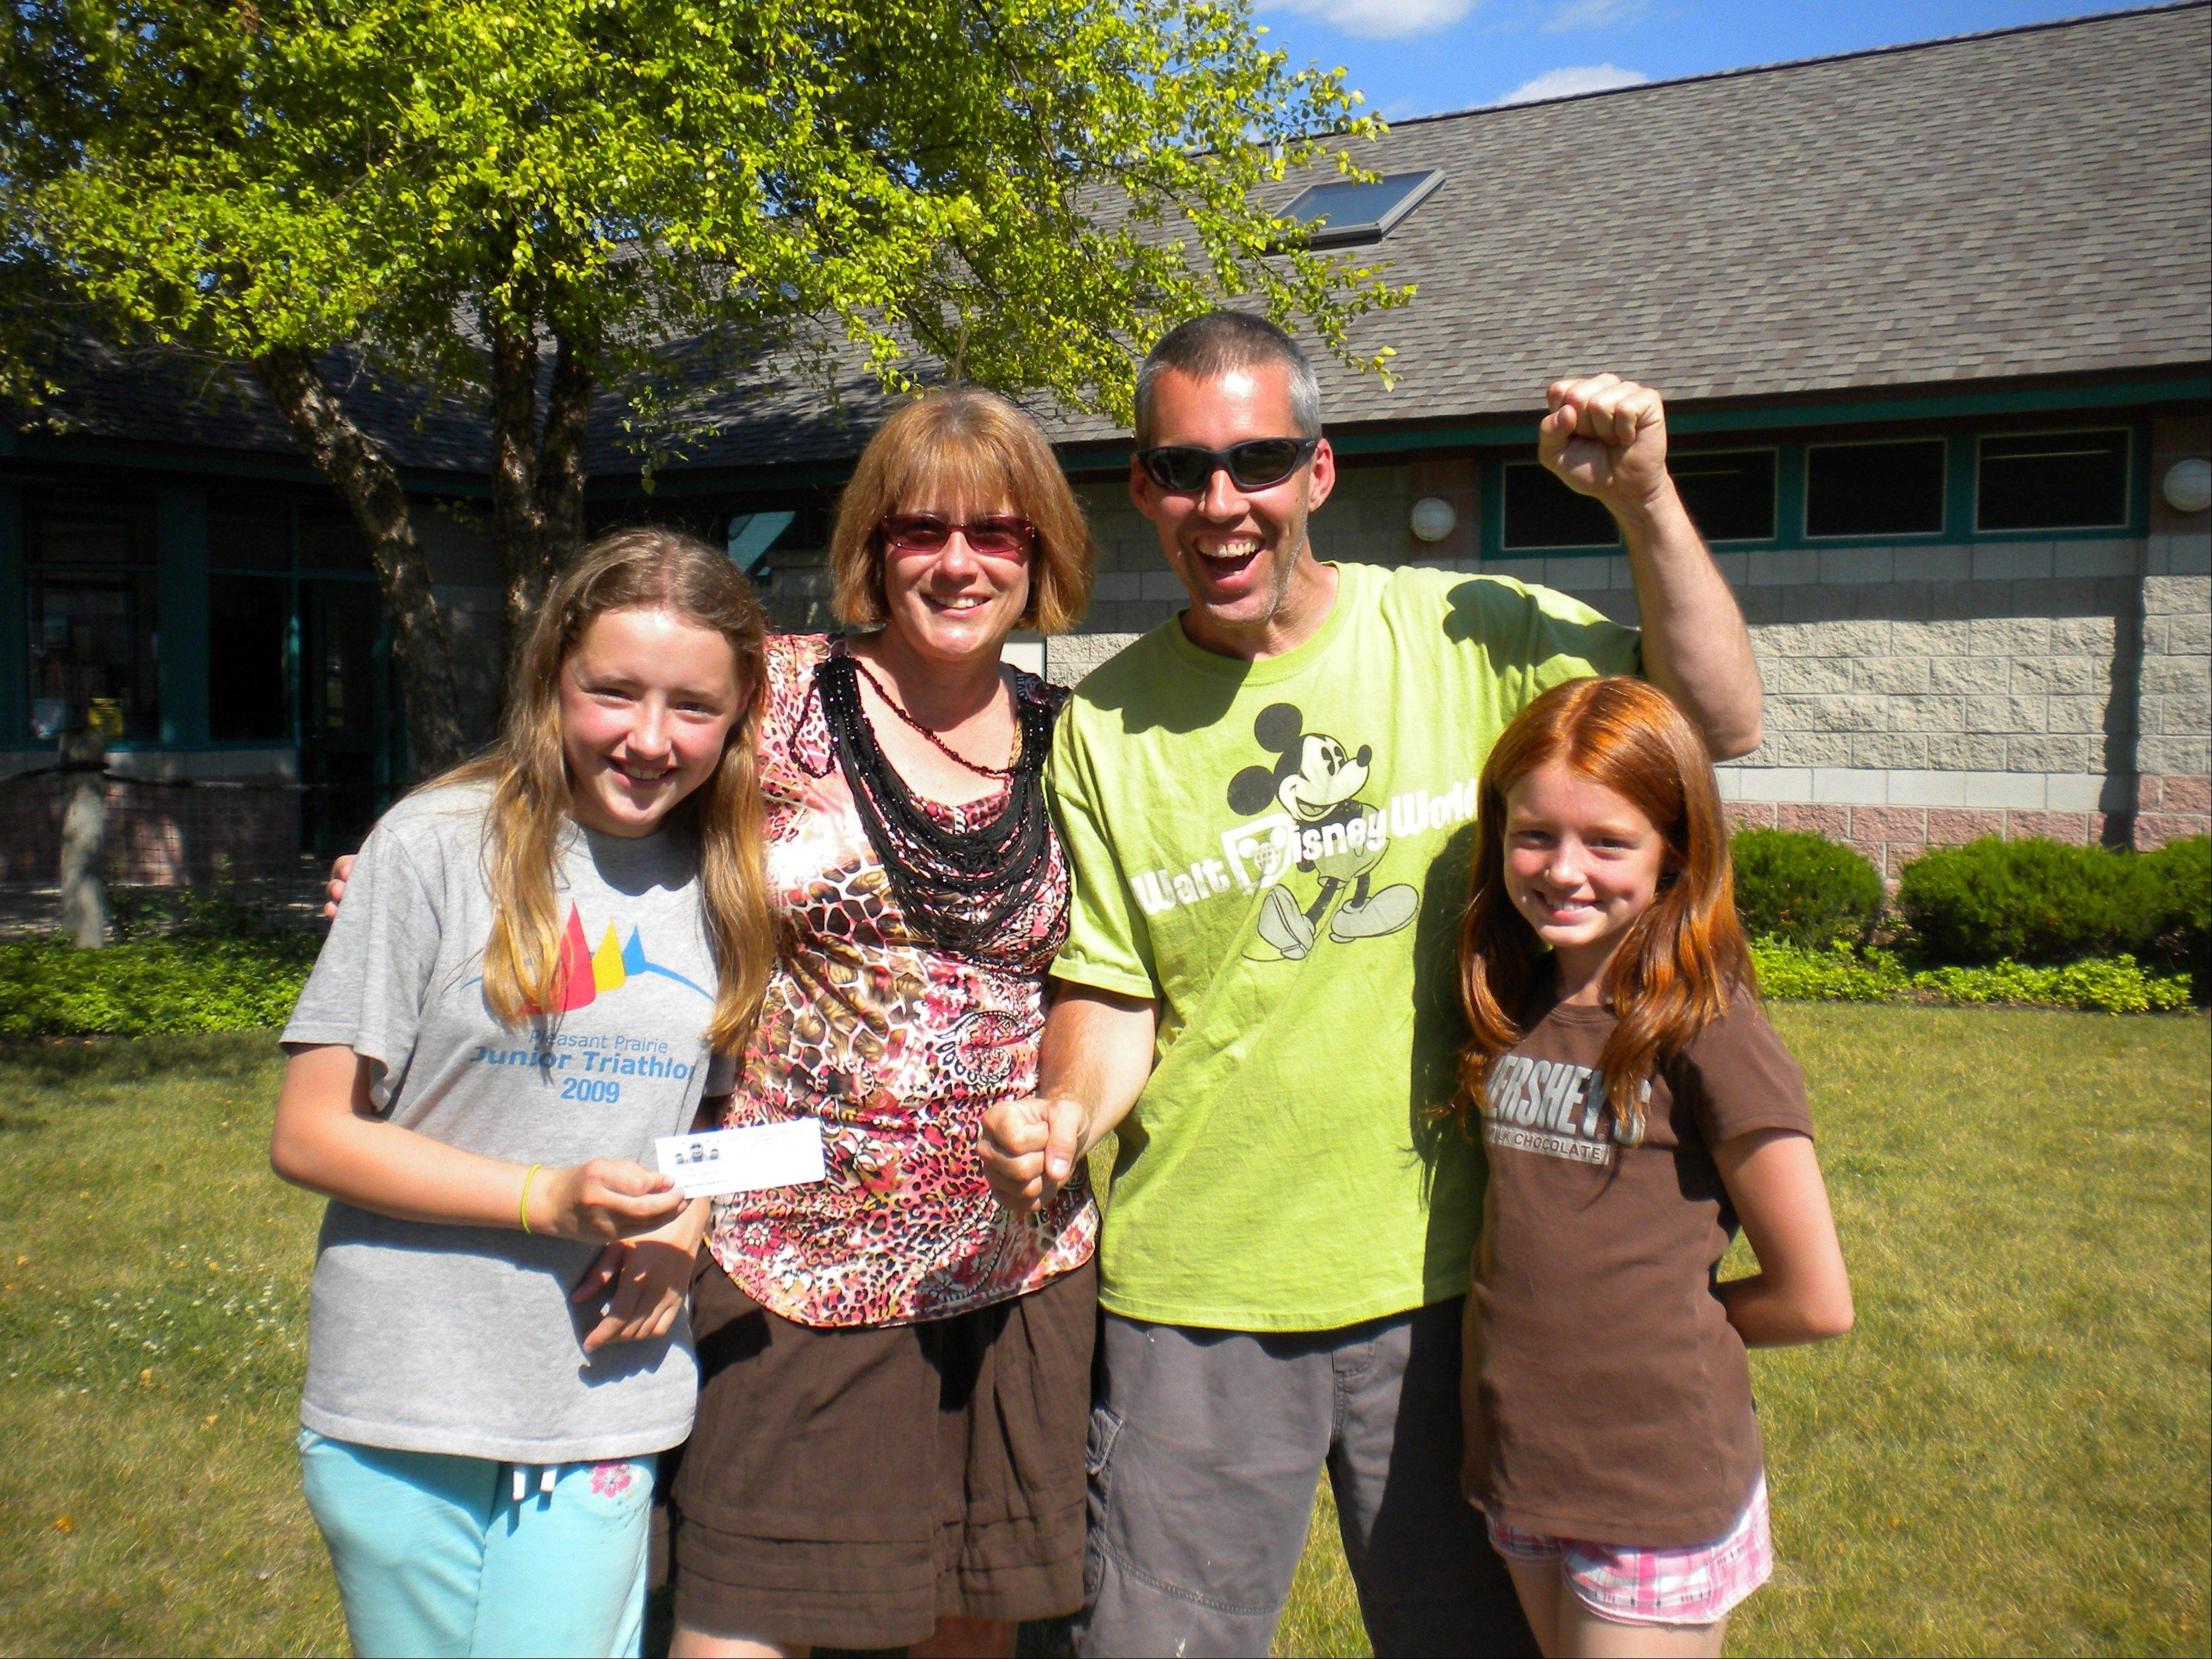 Turbo Turtle Race second place $250 winners the Meyers Family: Samantha, Mary, Frank, and Morgan Meyers.